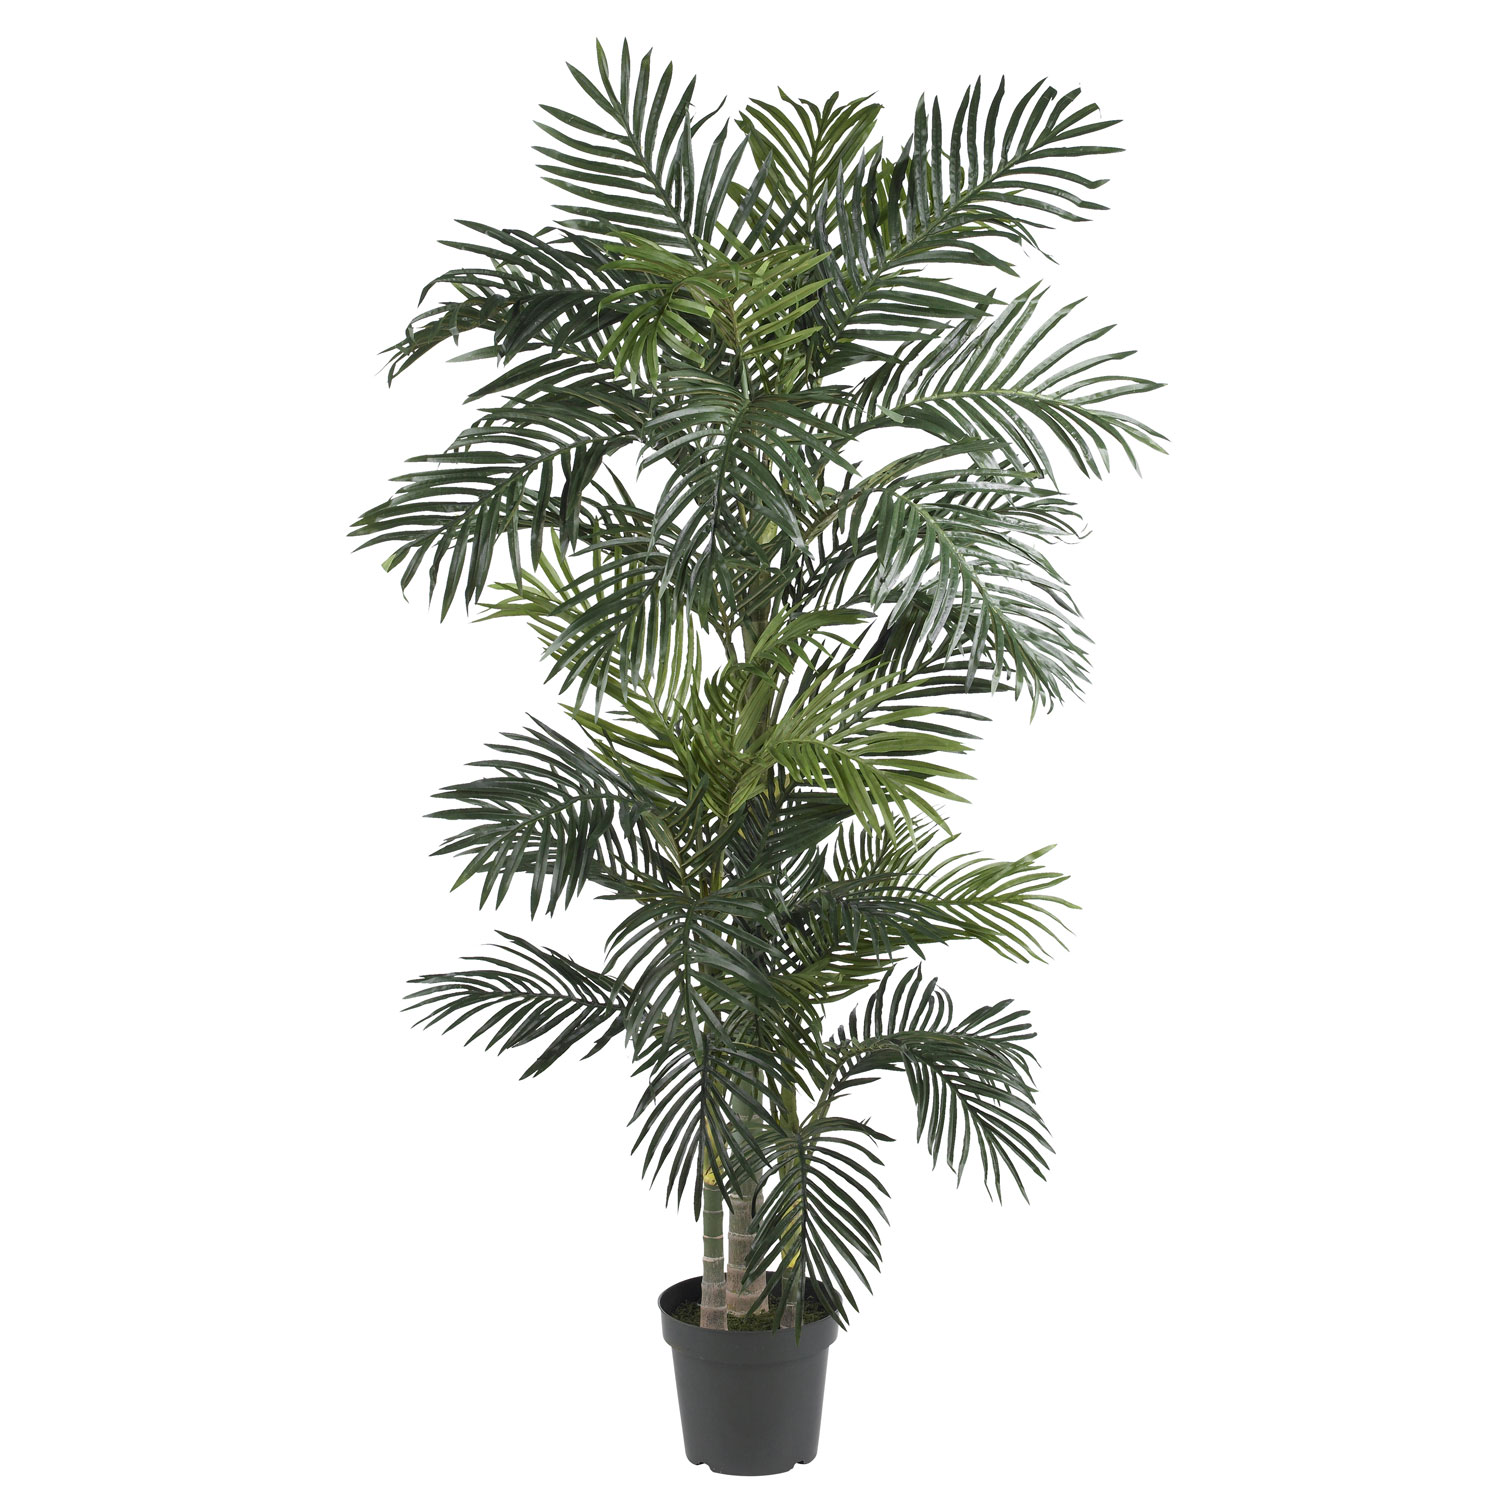 6 5 Foot Golden Cane Palm Tree Potted 5289